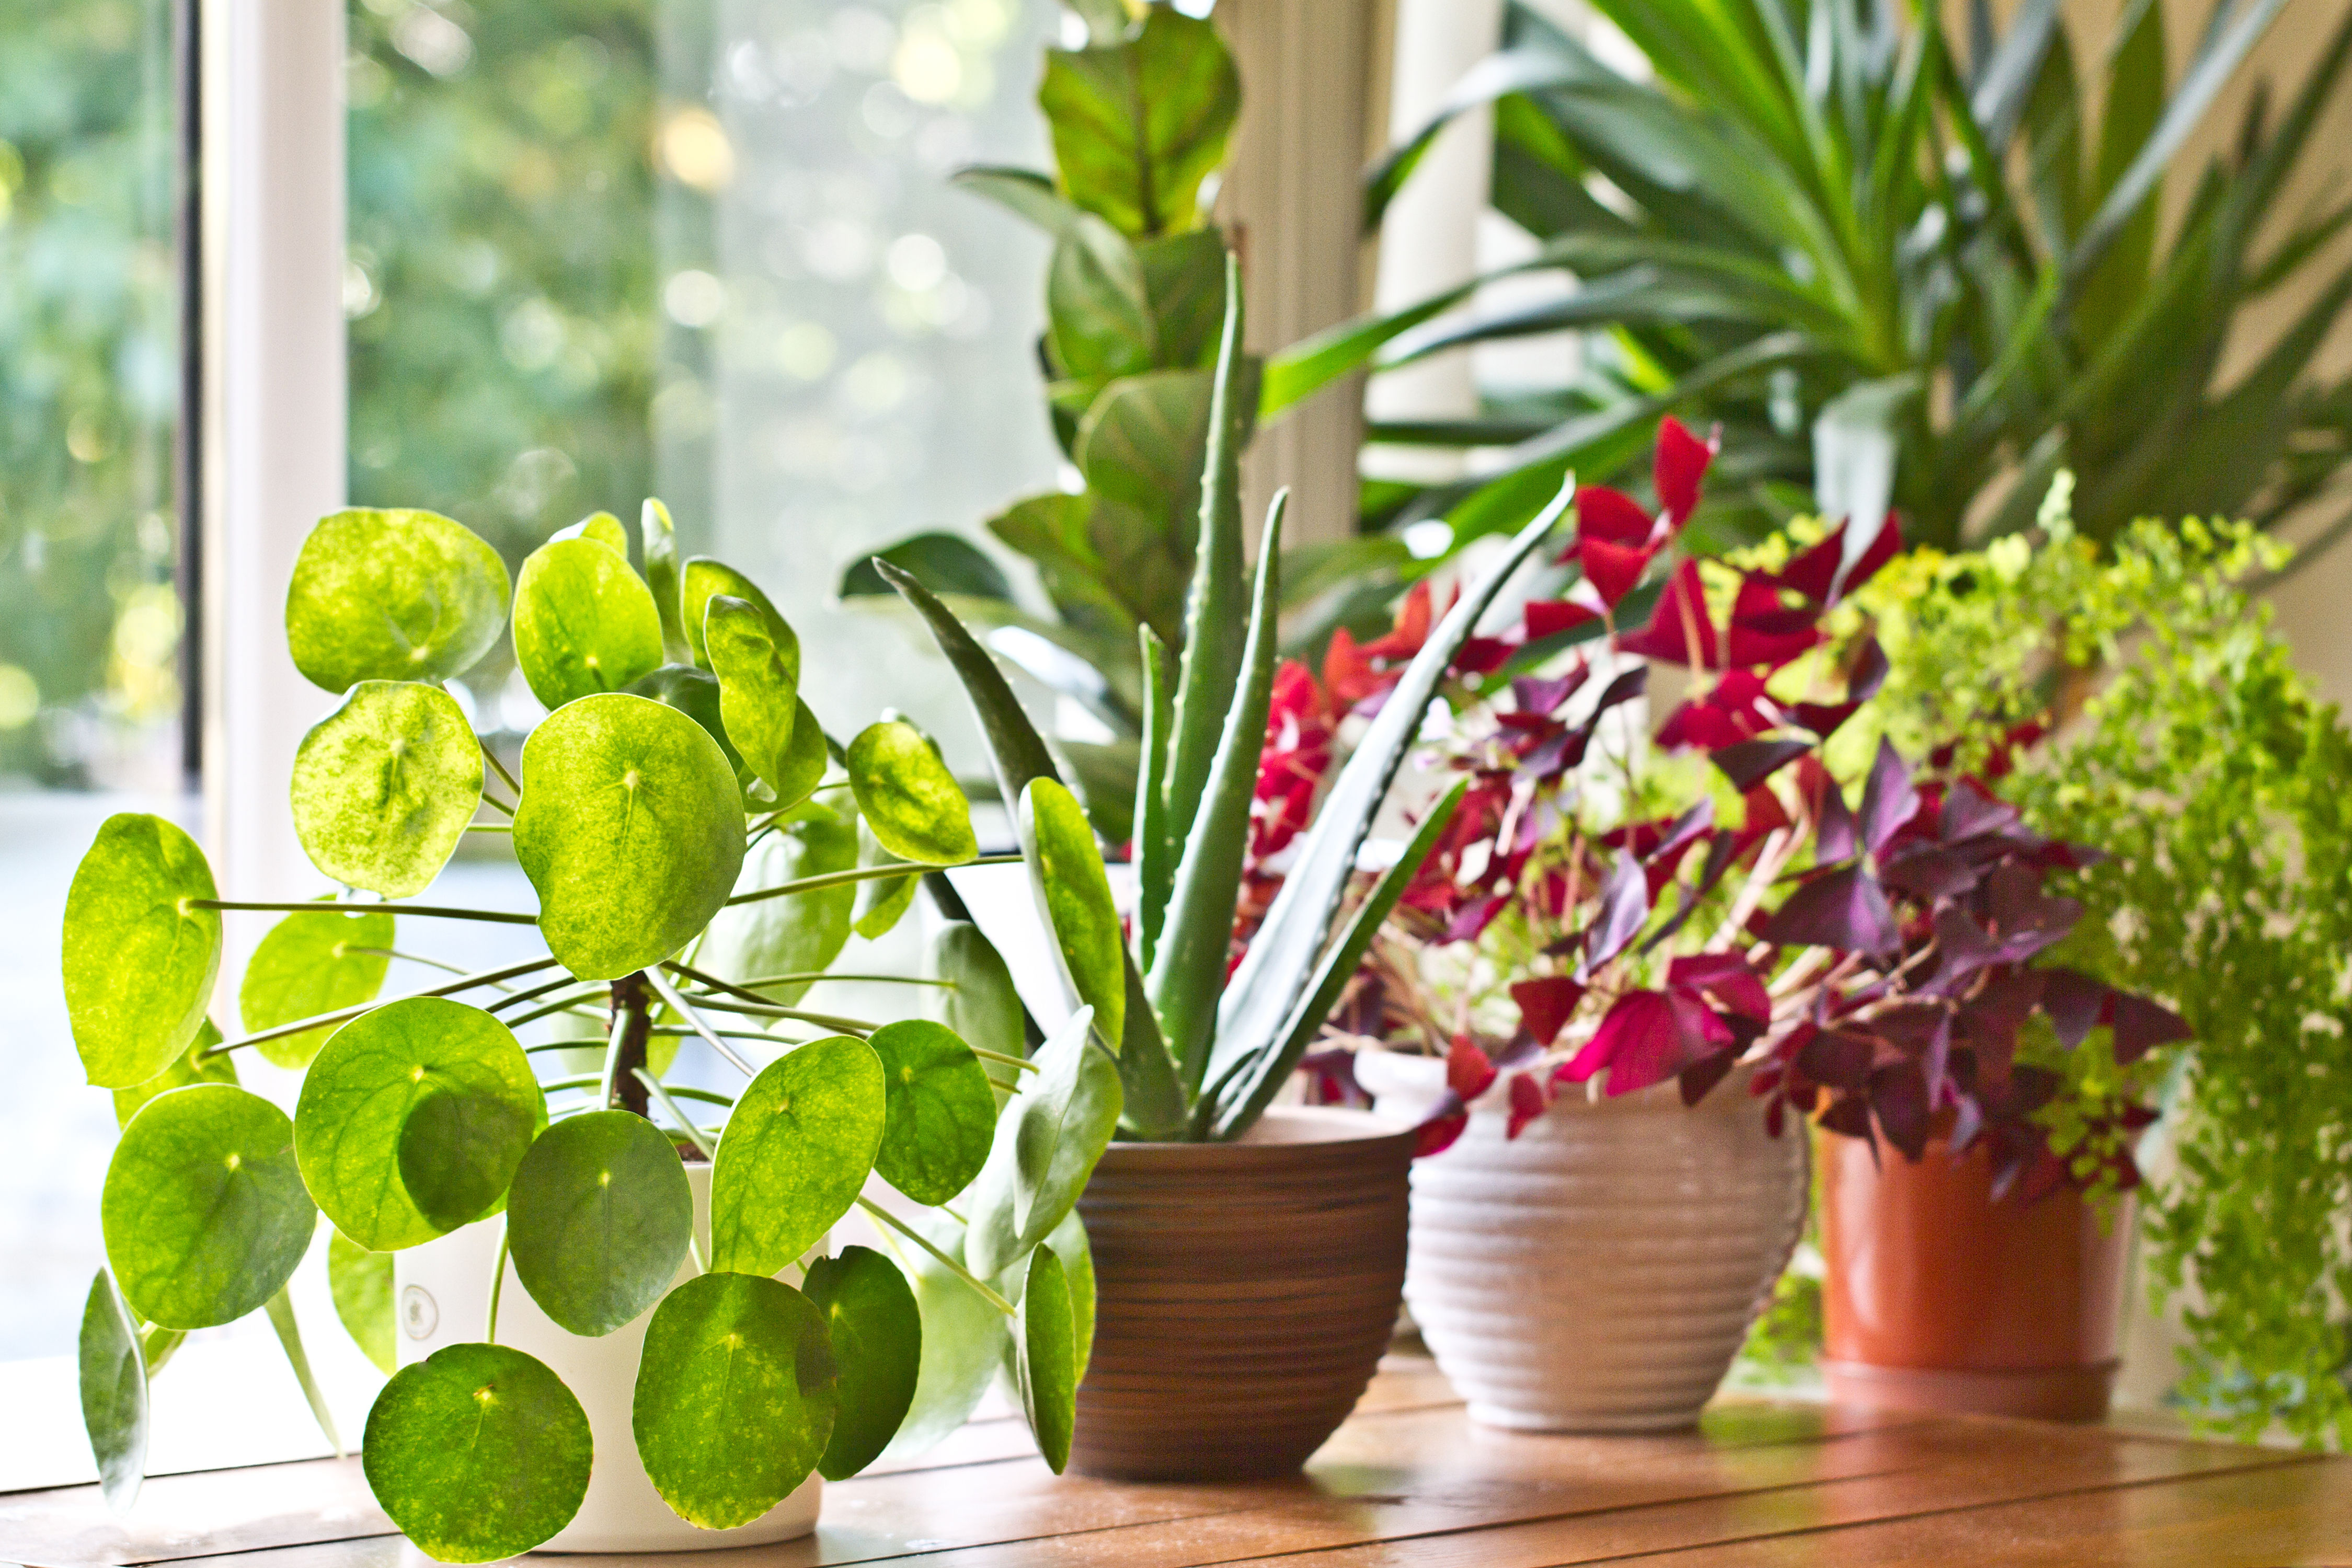 Here's Why You Should Use the Ice Cube Method With Your Houseplants